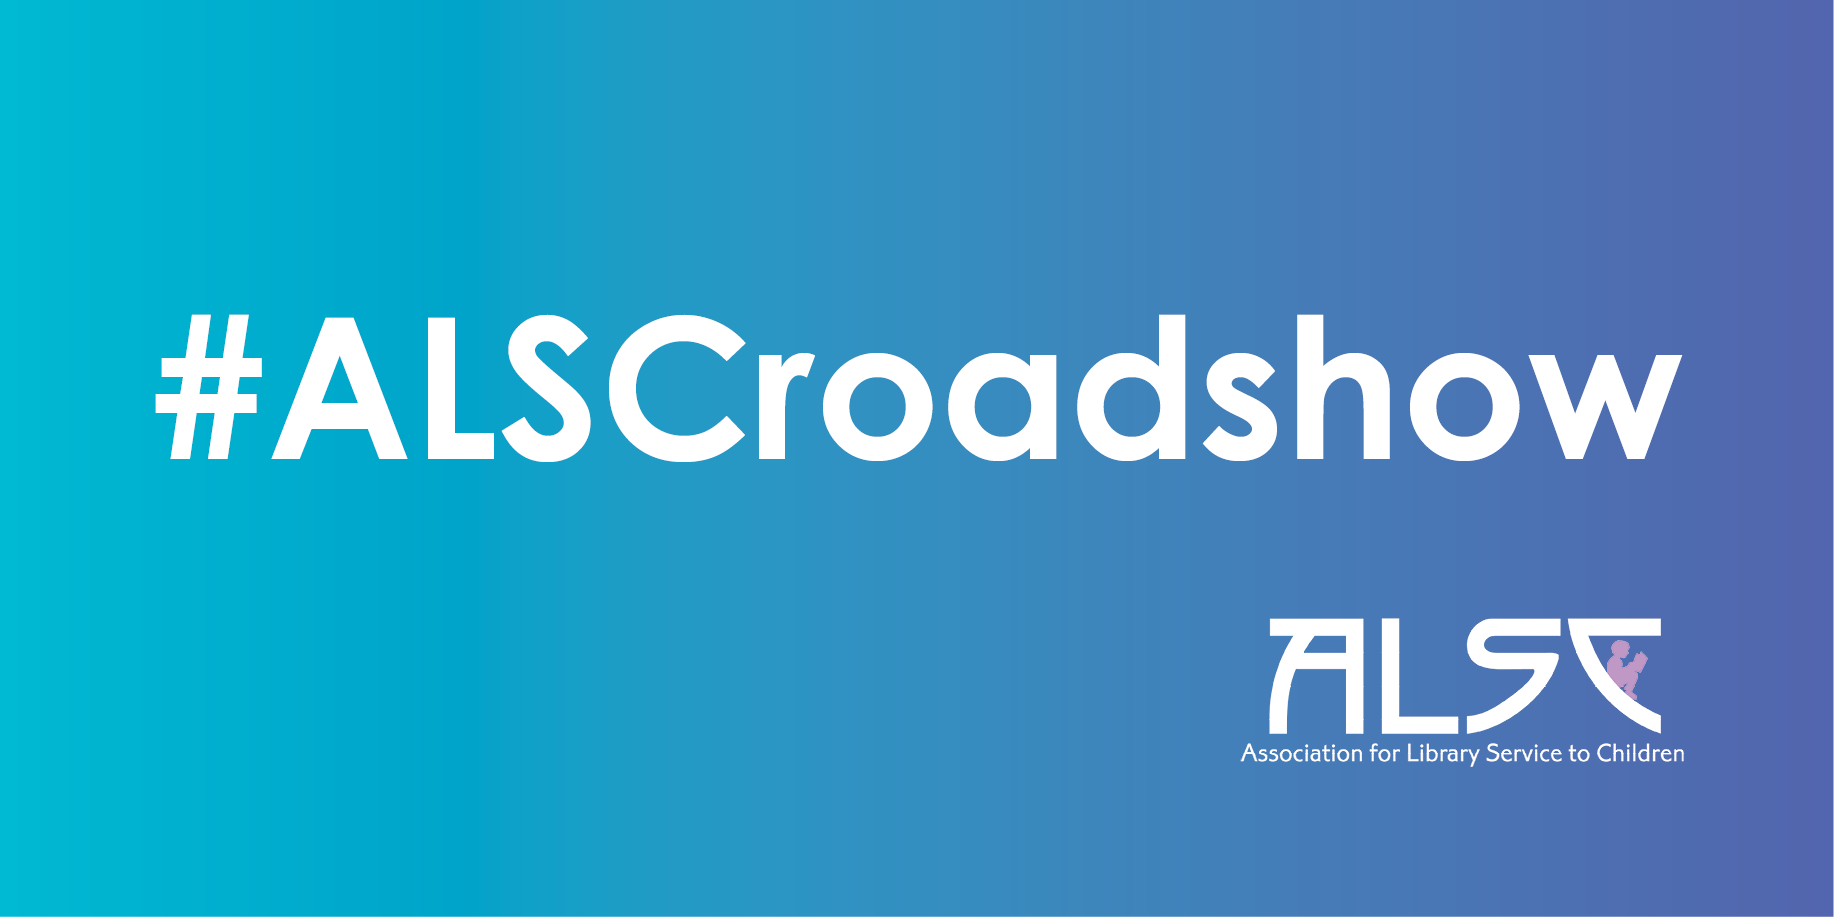 ALSC Roadshow graphic